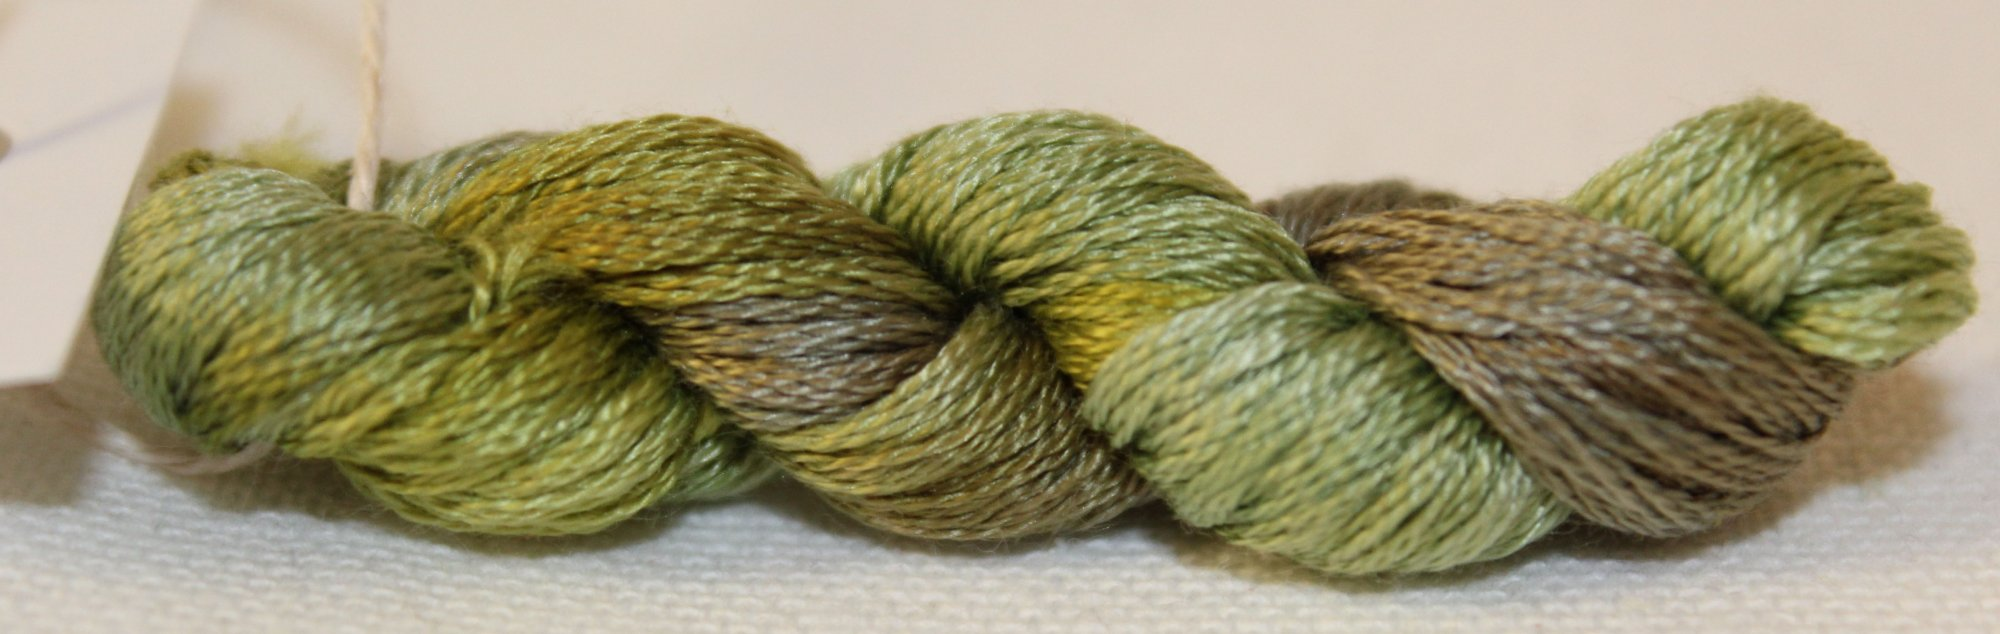 Pickles- Hand-Dyed Embroidery Floss